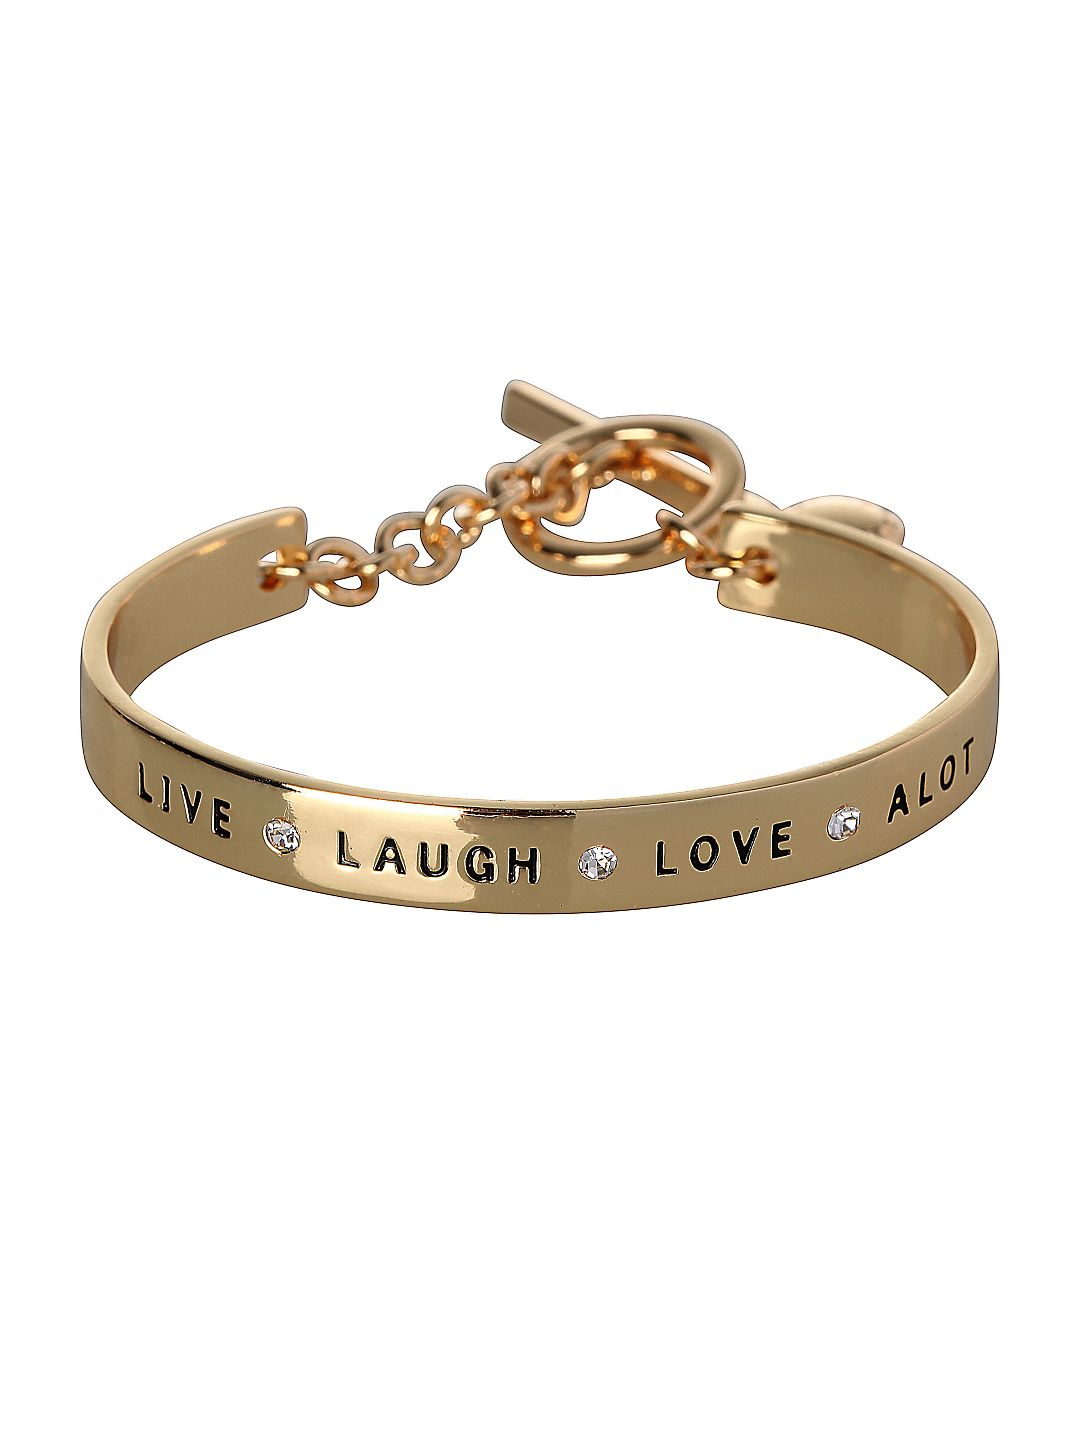 Basic Live, Laugh, Love A Lot Etched Bracelet